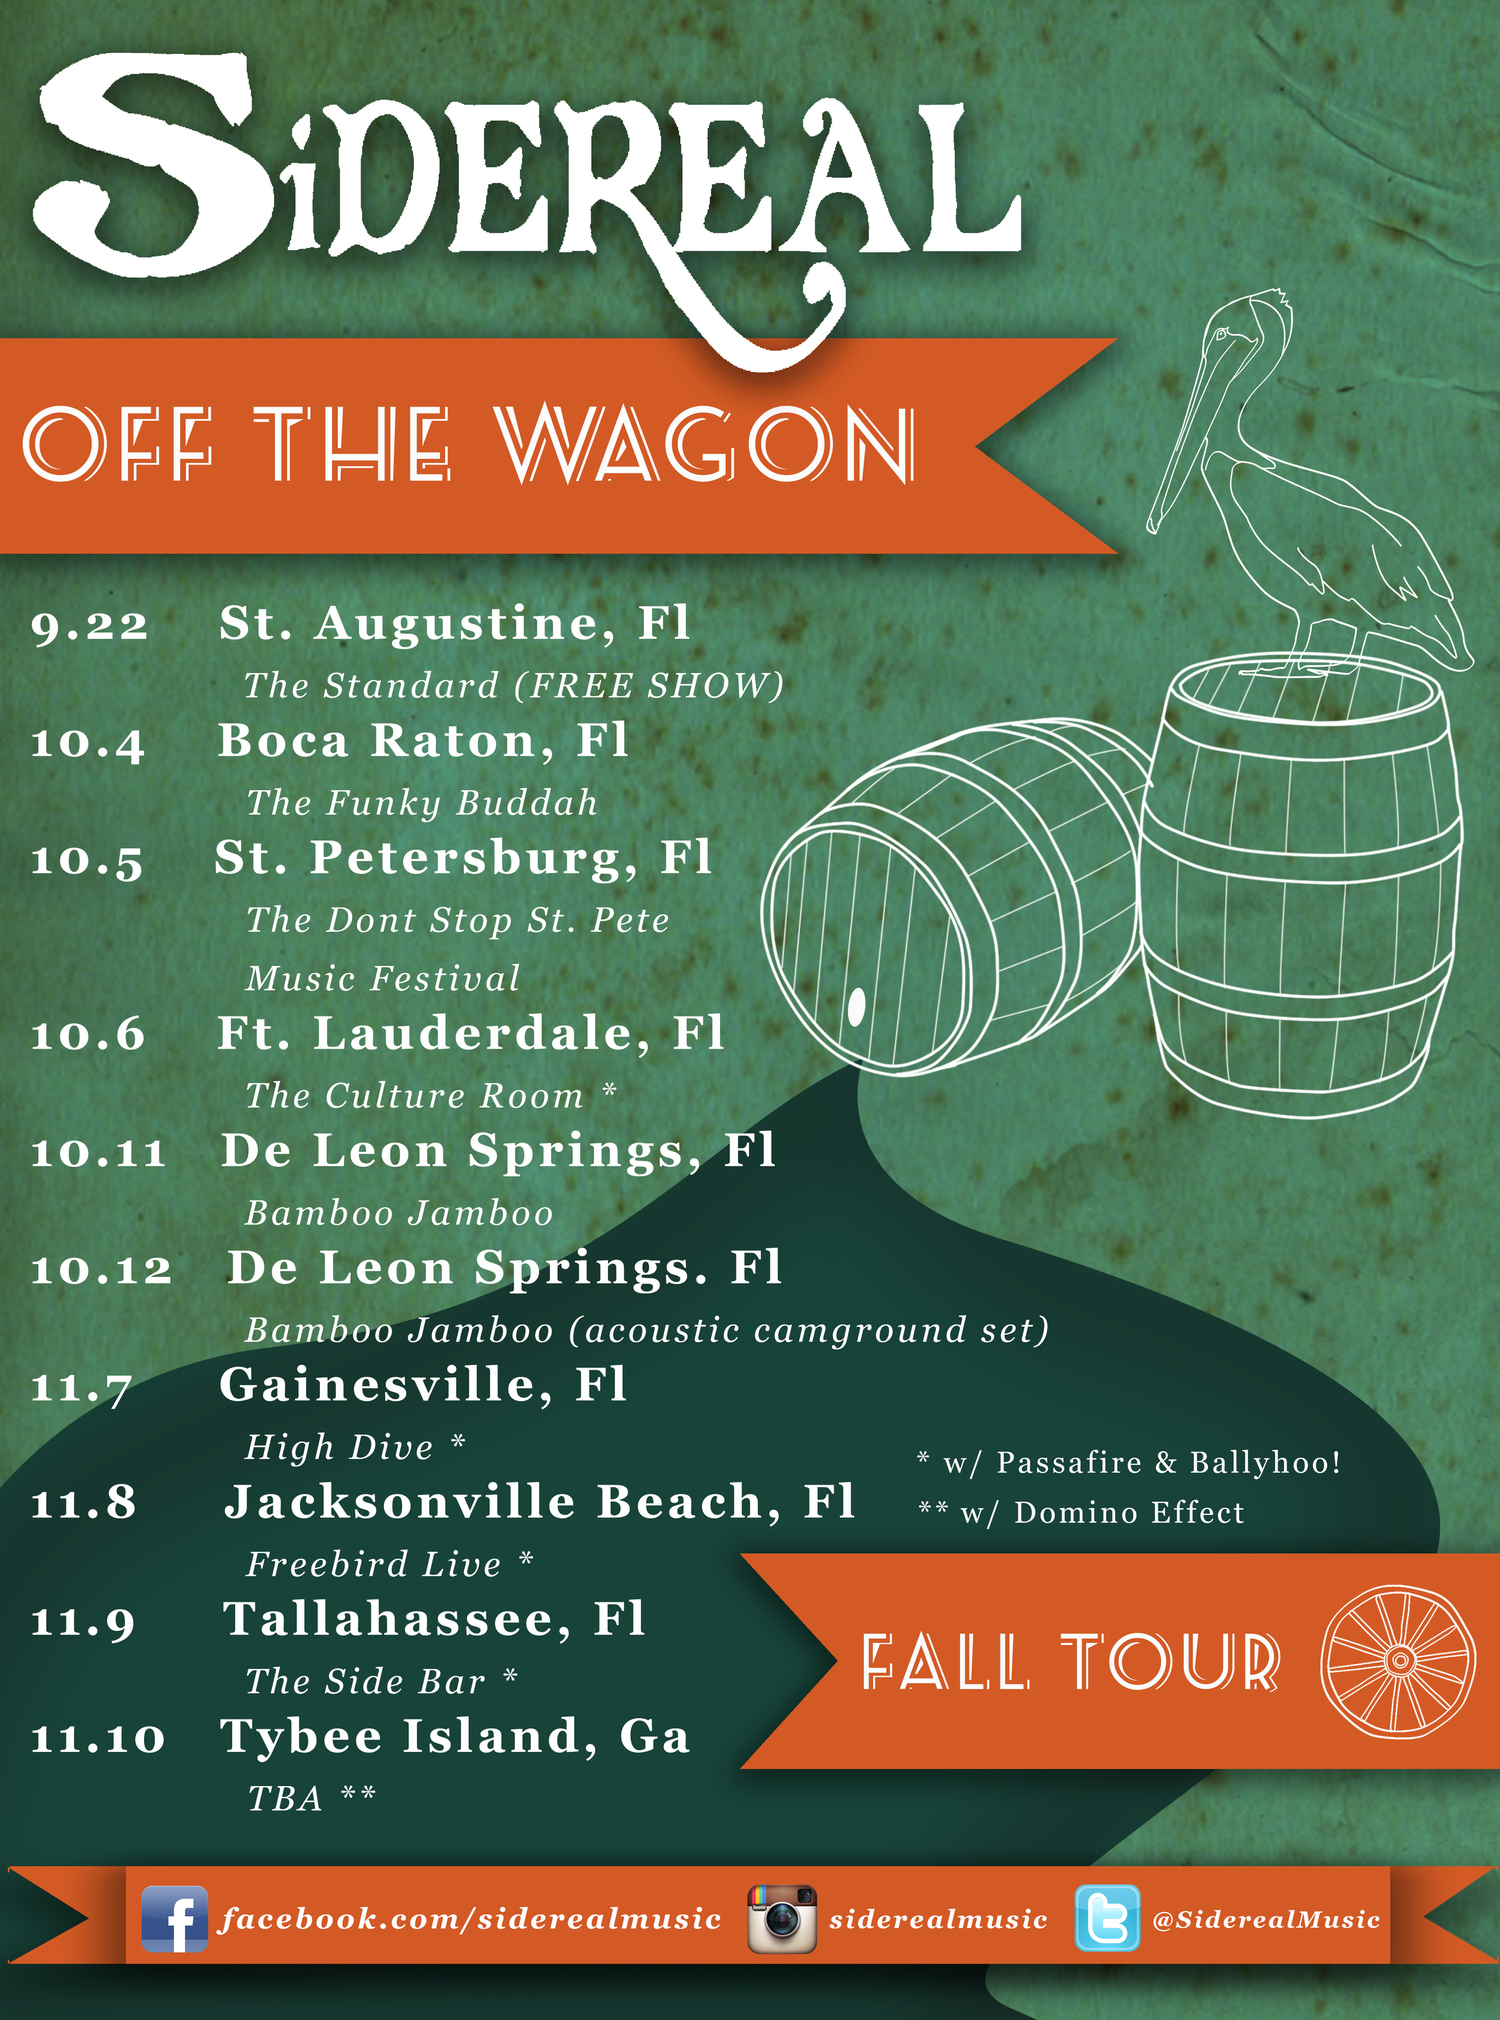 poster+off+the+wagon+fall+tour2.2.jpg